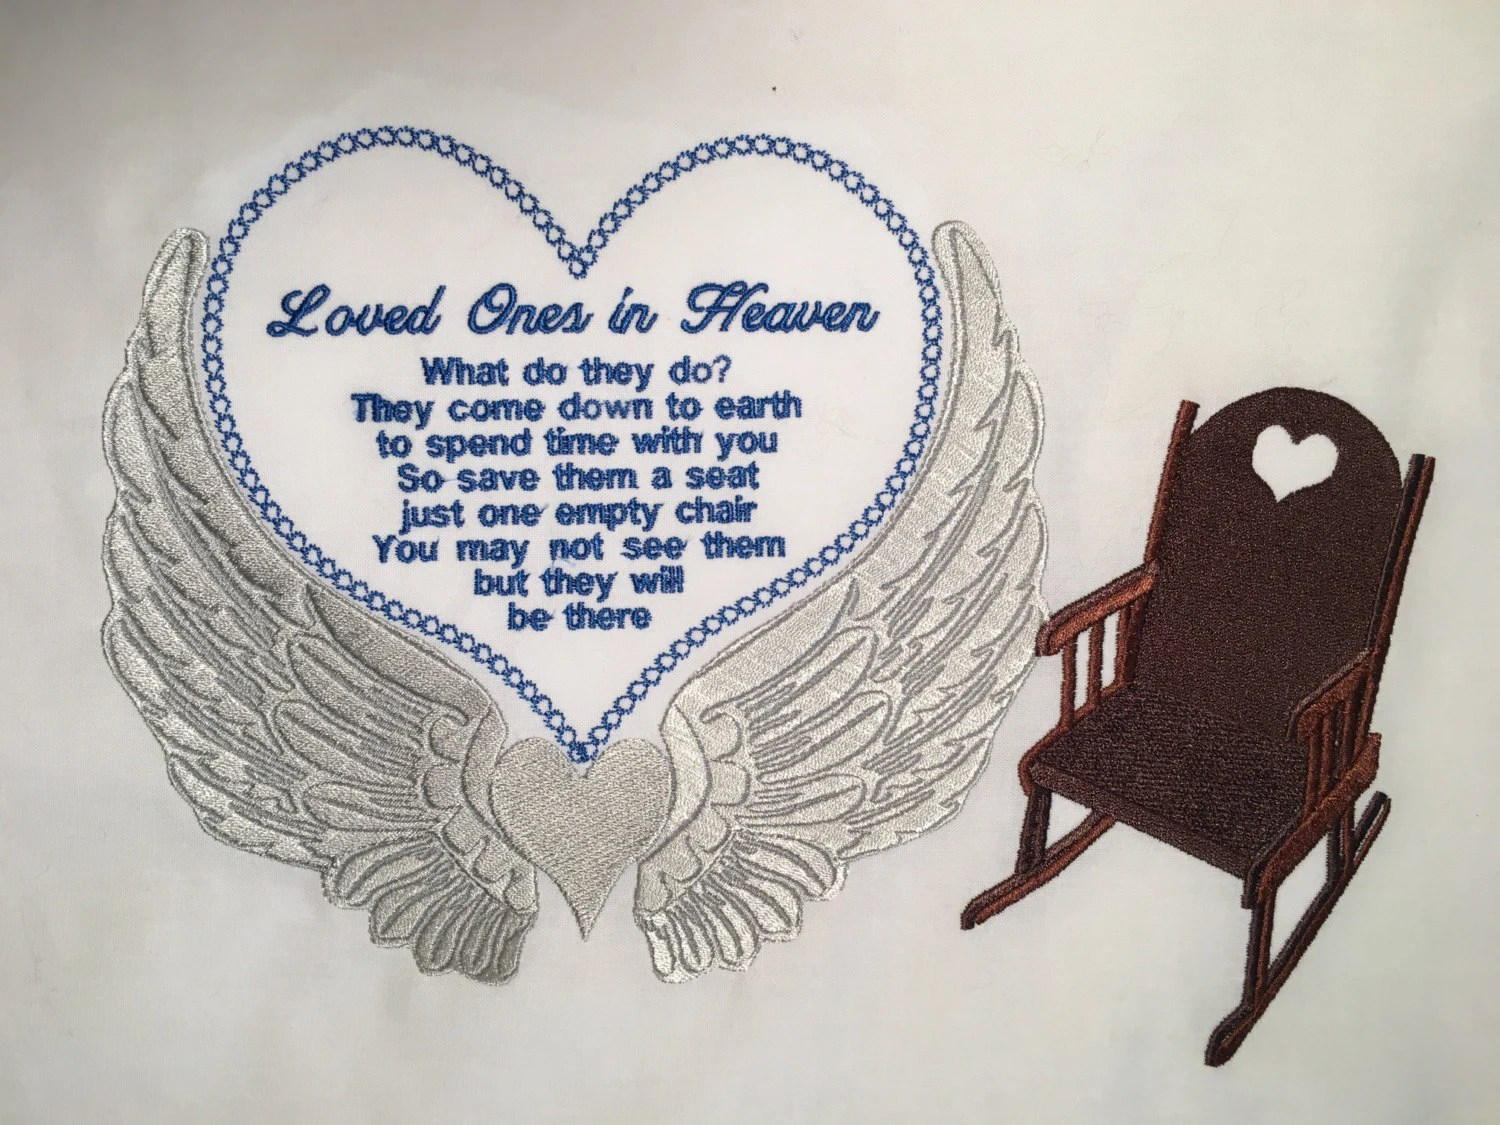 chair design love folding lawn chairs at lowes loved ones in heaven embroidery can be done with 11x8 etsy image 0